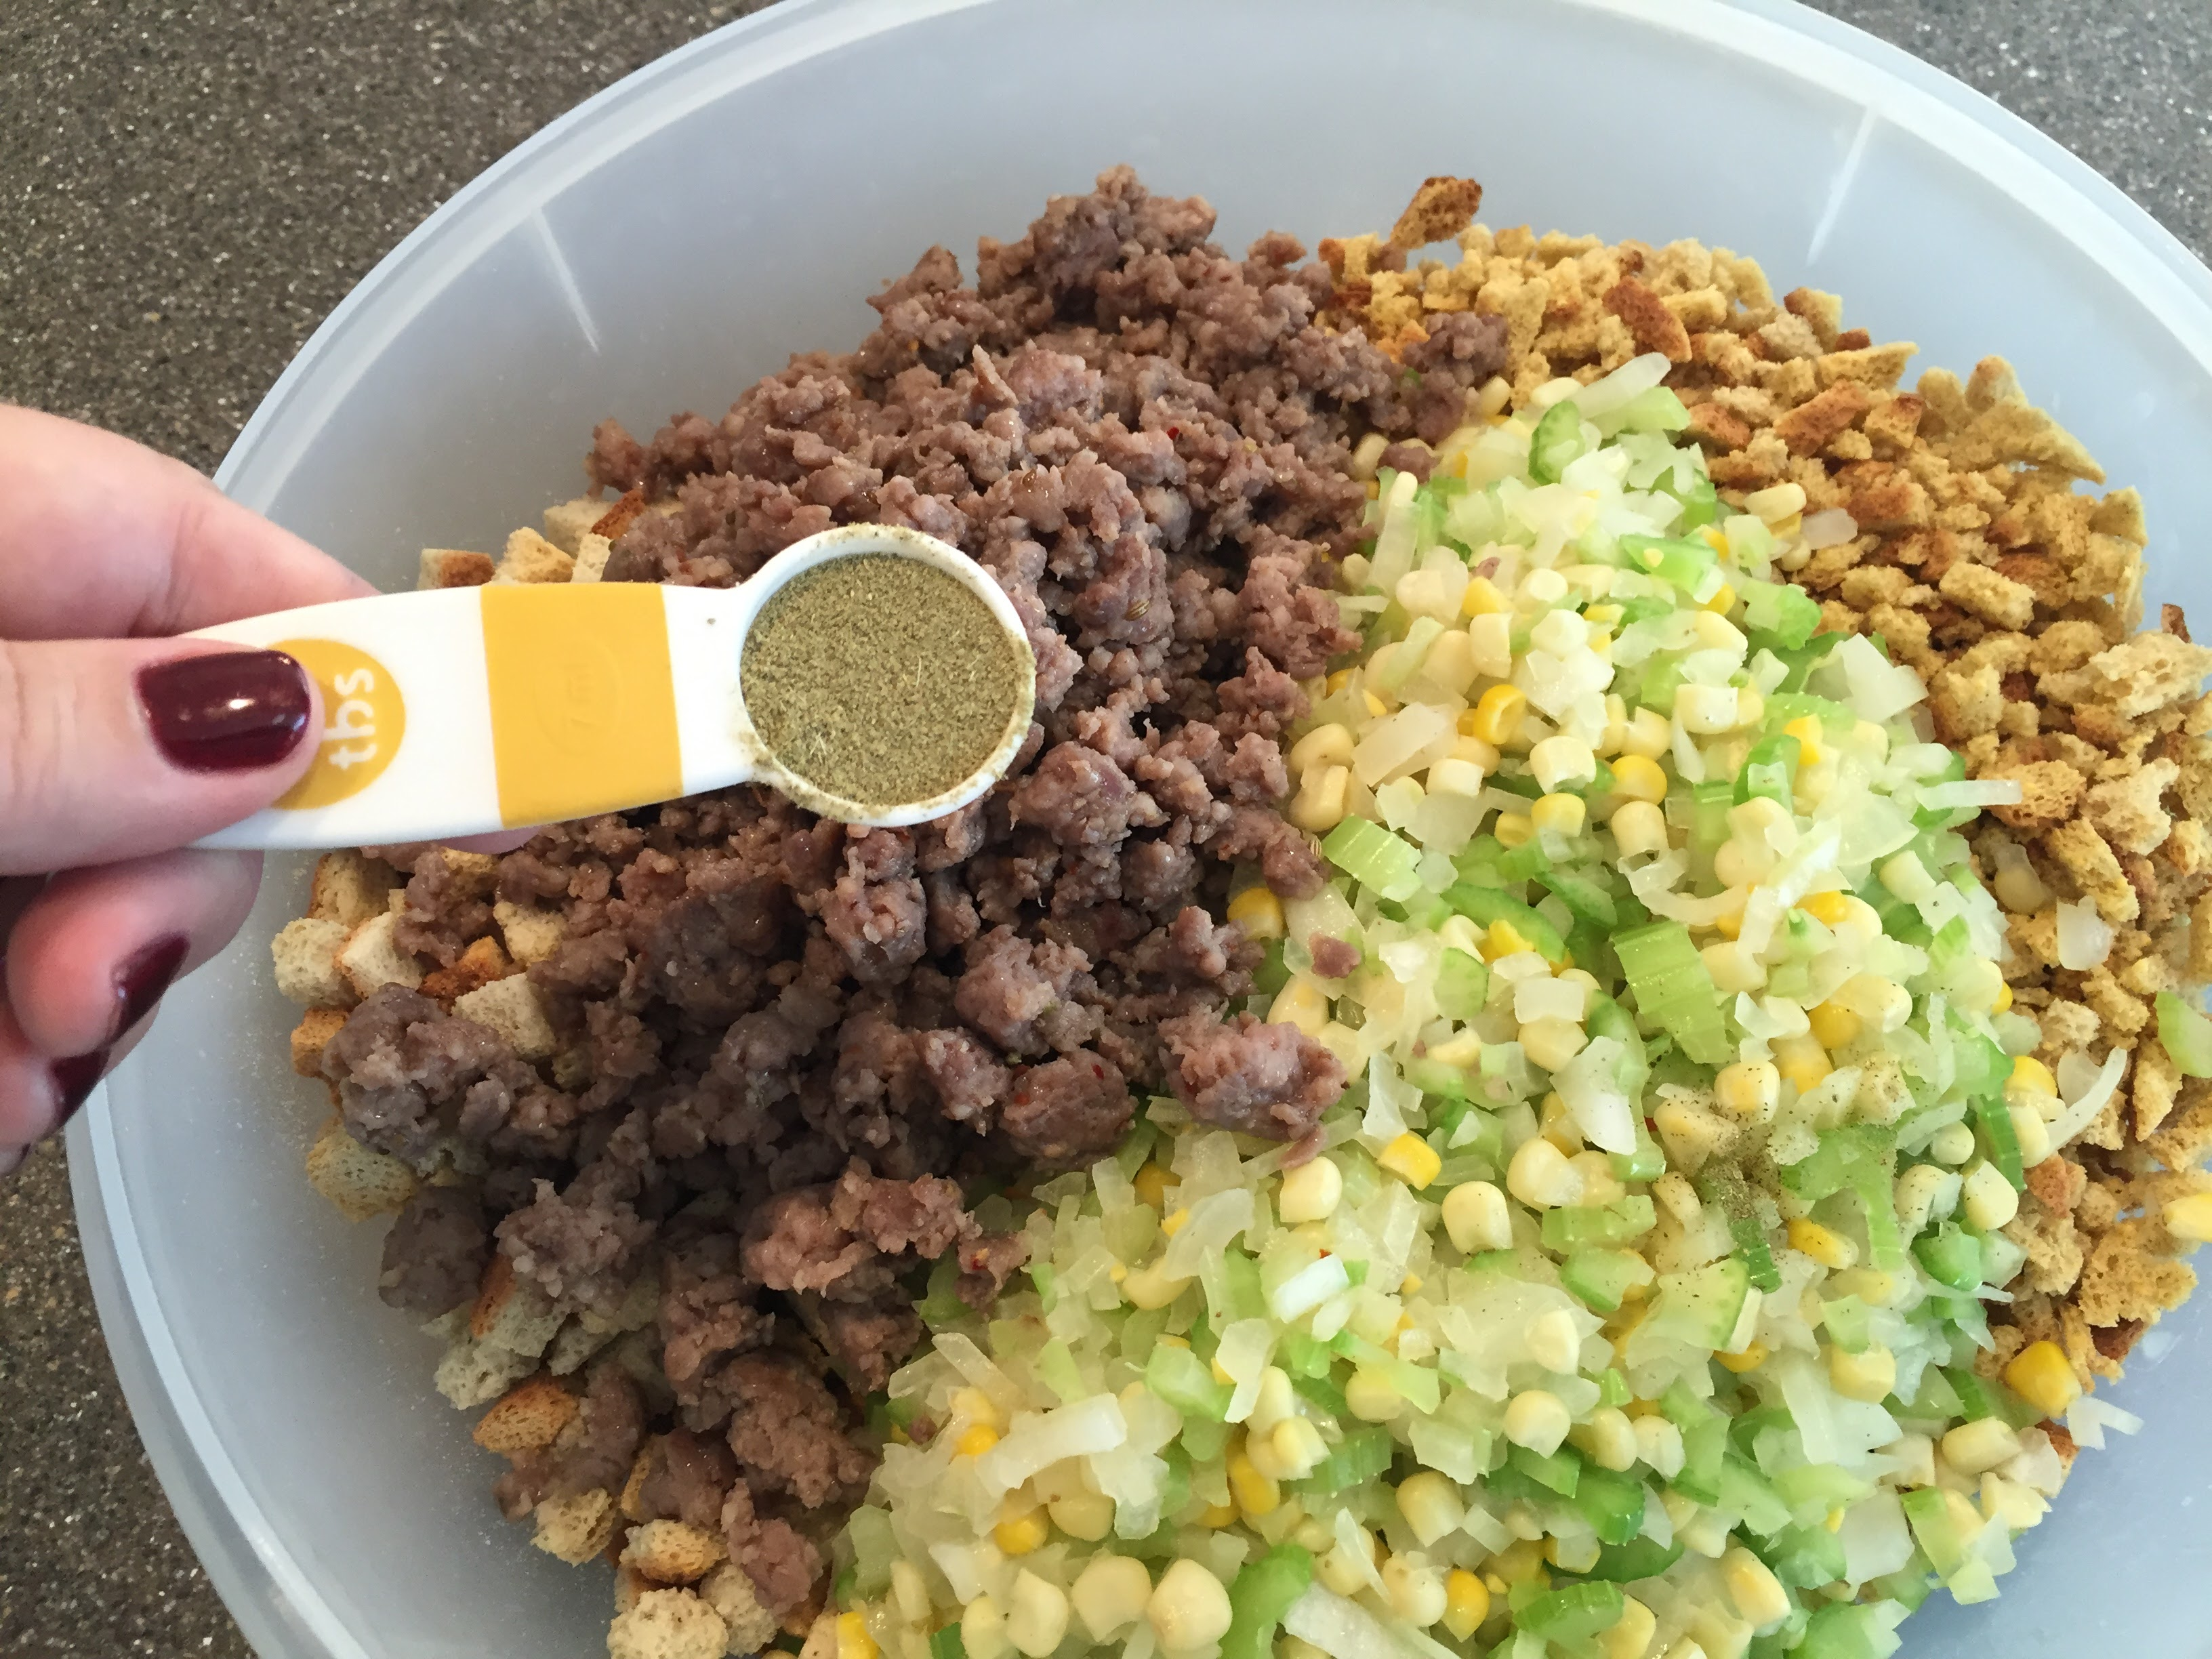 Poultry seasoning is added to stuffing with sausage recipe includes poultry seasoning